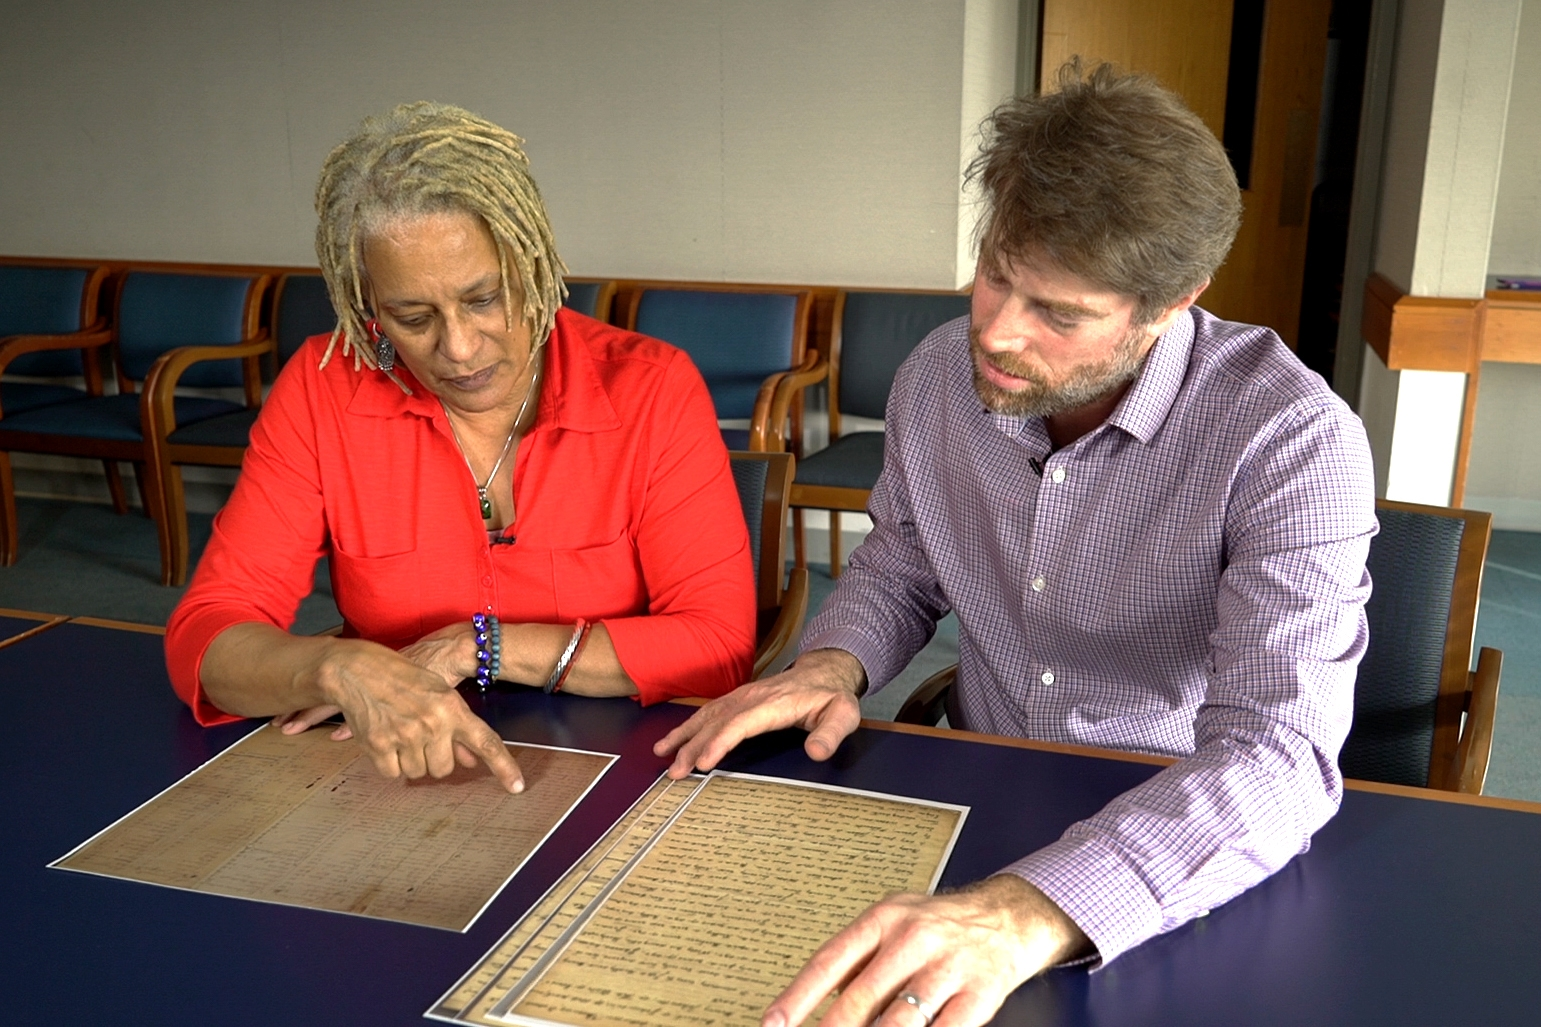 Meli Short-Colomb pores over documents related to the sale with professor Adam Rothman, who now runs the Slavery Archive at Georgetown. (Jason Burles/CBC)